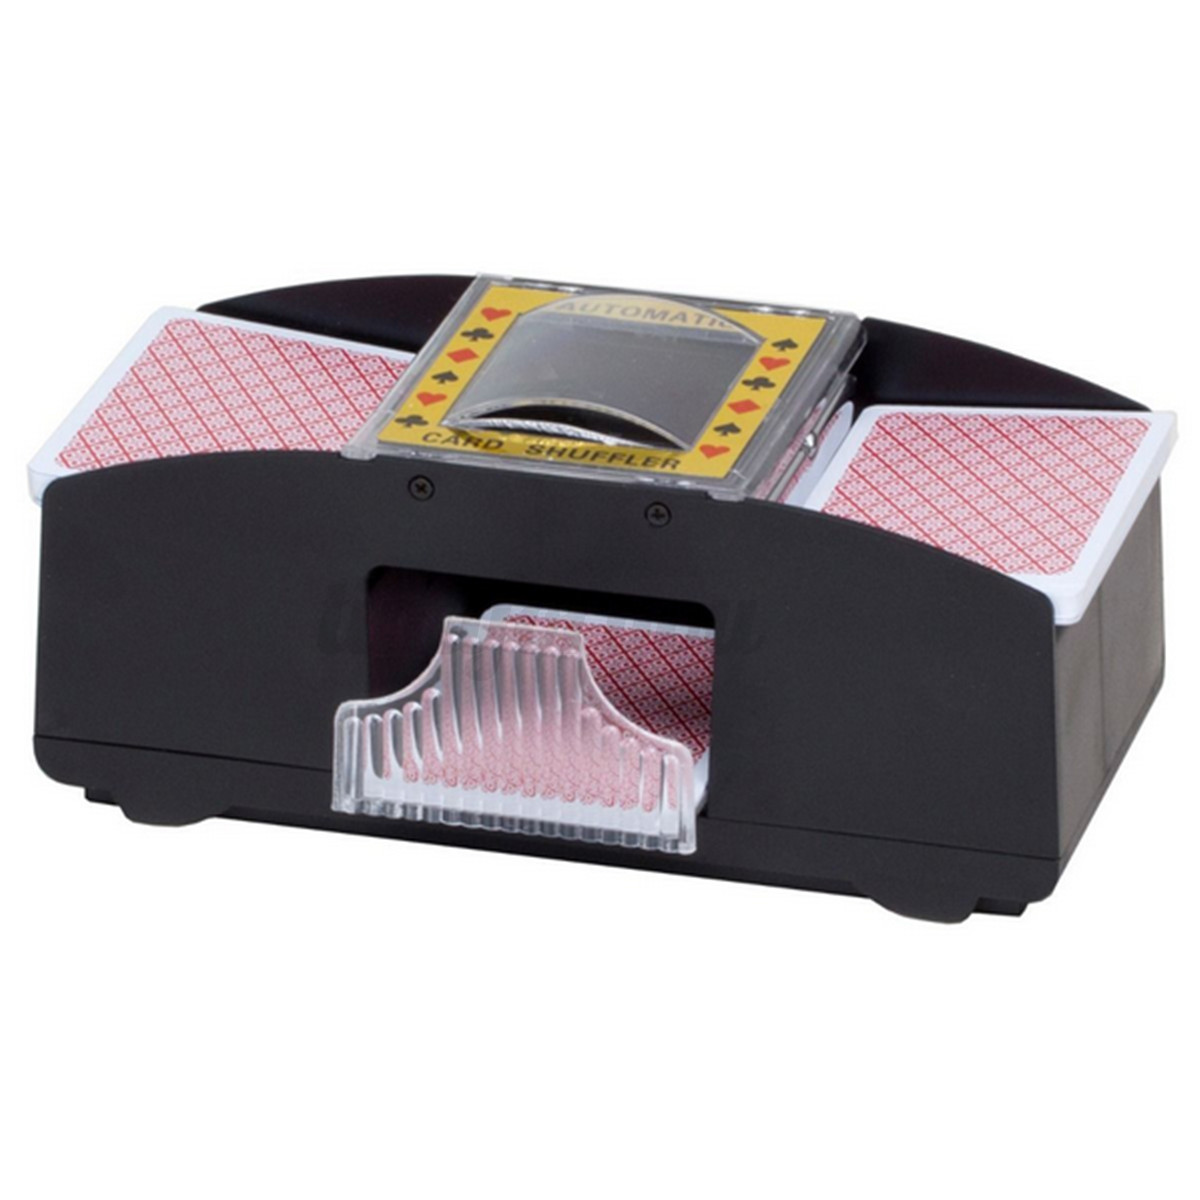 m langeur automatique de cartes jouer trieur plastique poker card shuffler uk ebay. Black Bedroom Furniture Sets. Home Design Ideas